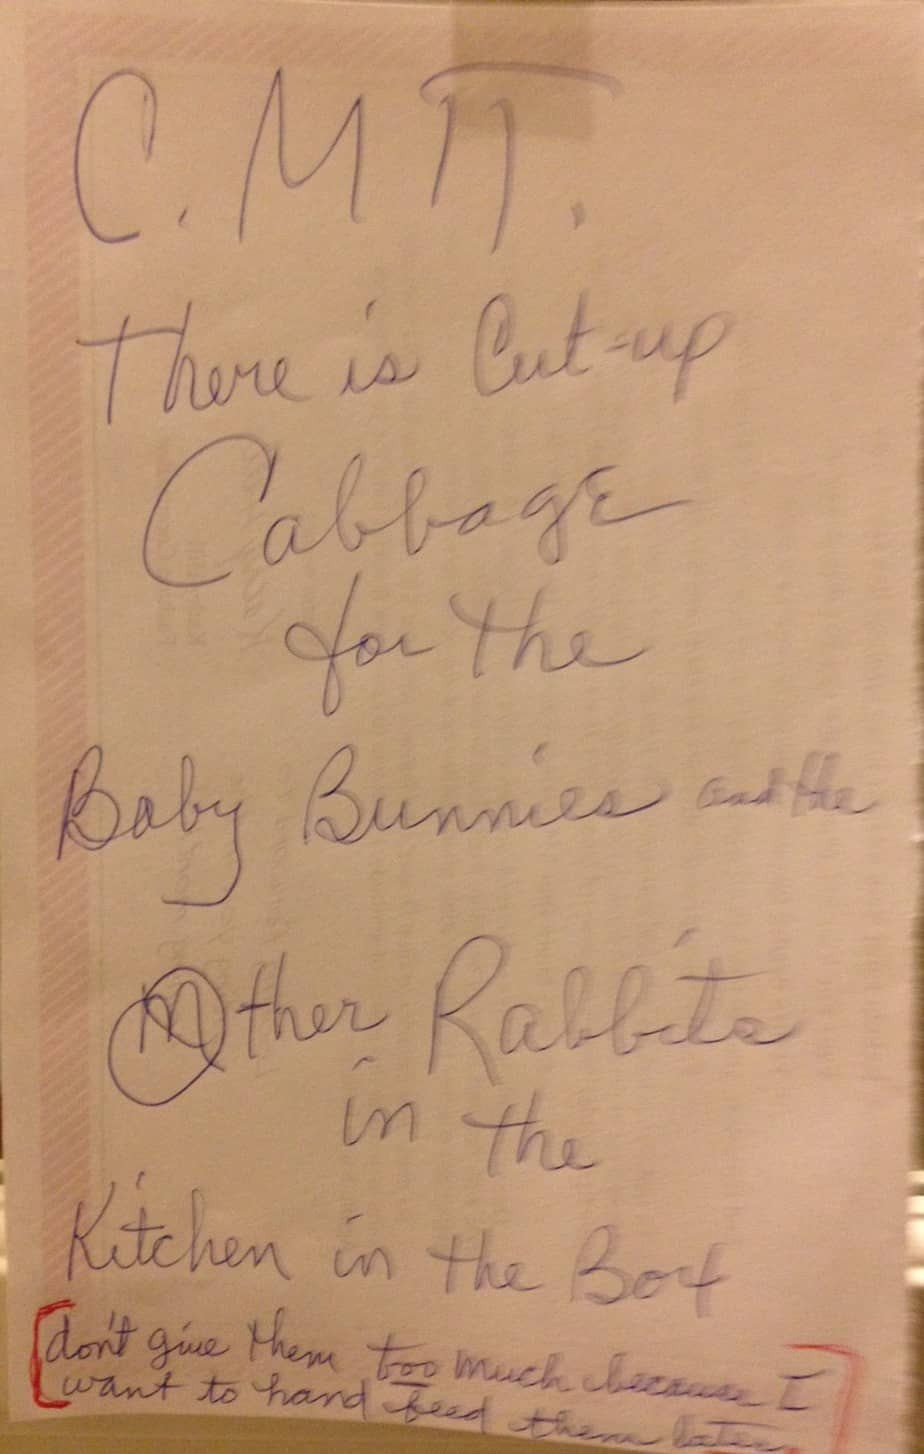 MOMS NOTE ABOUT RABBITS (2)